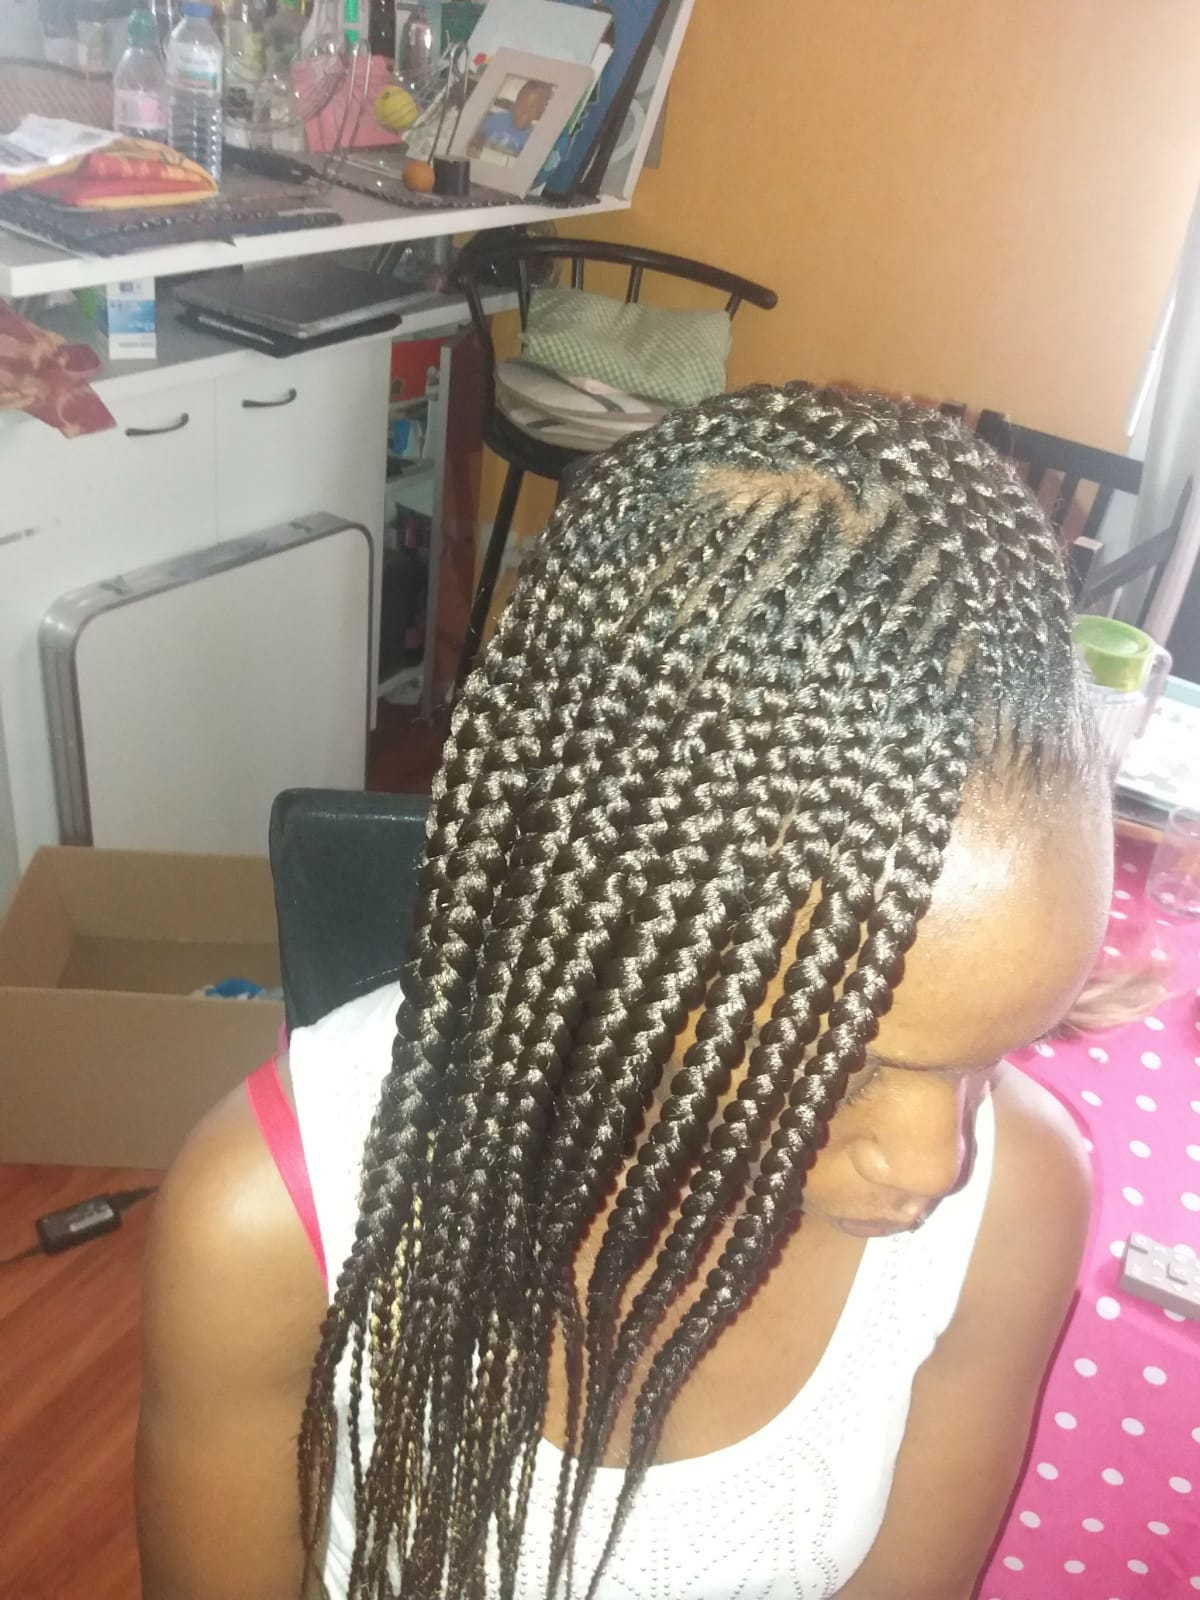 salon de coiffure afro tresse tresses box braids crochet braids vanilles tissages paris 75 77 78 91 92 93 94 95 EKJBSAQT